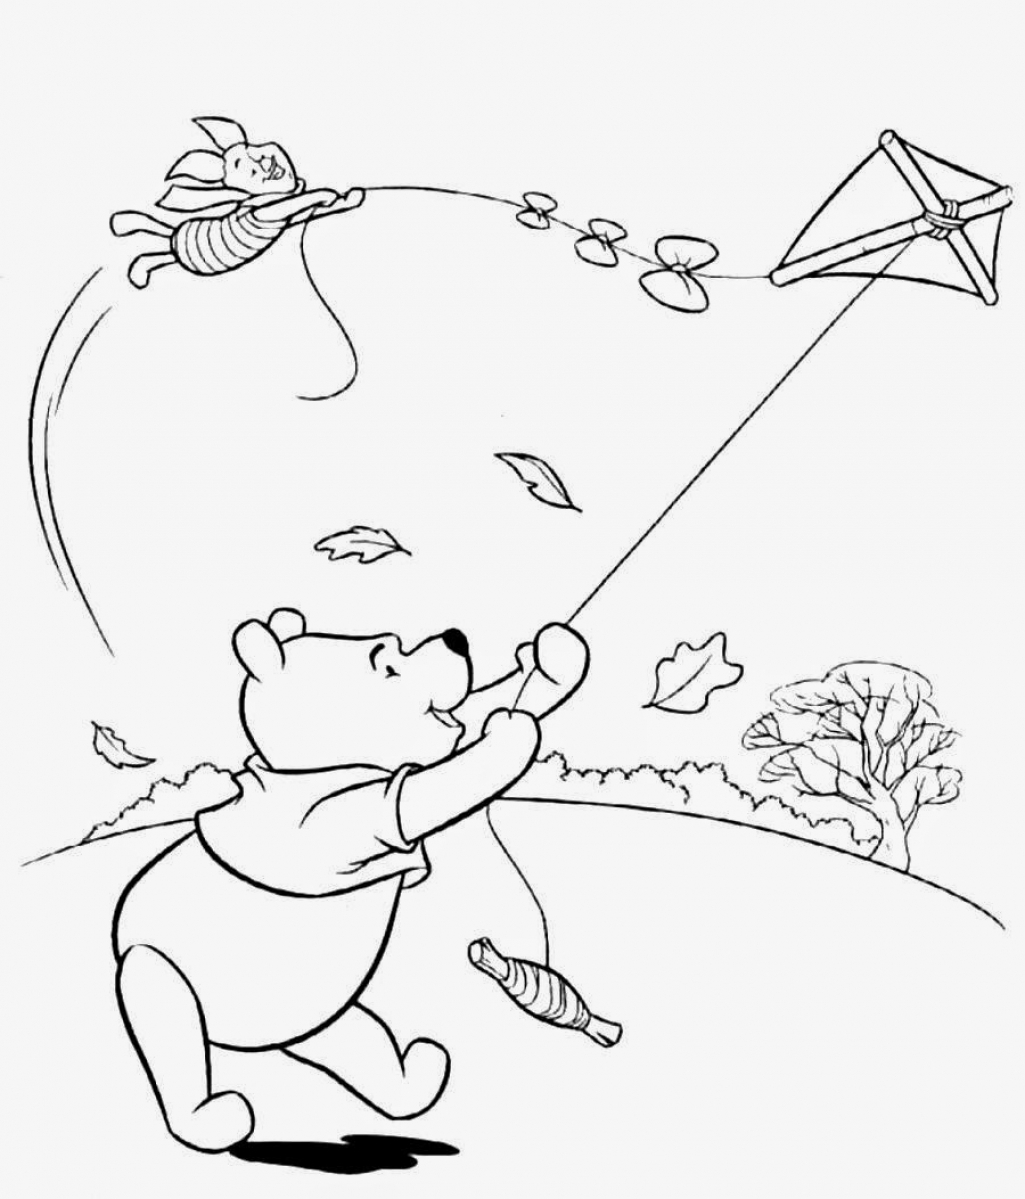 1025x1199 Fortune Weather Colouring Sheets Coloring Pages Printable Very